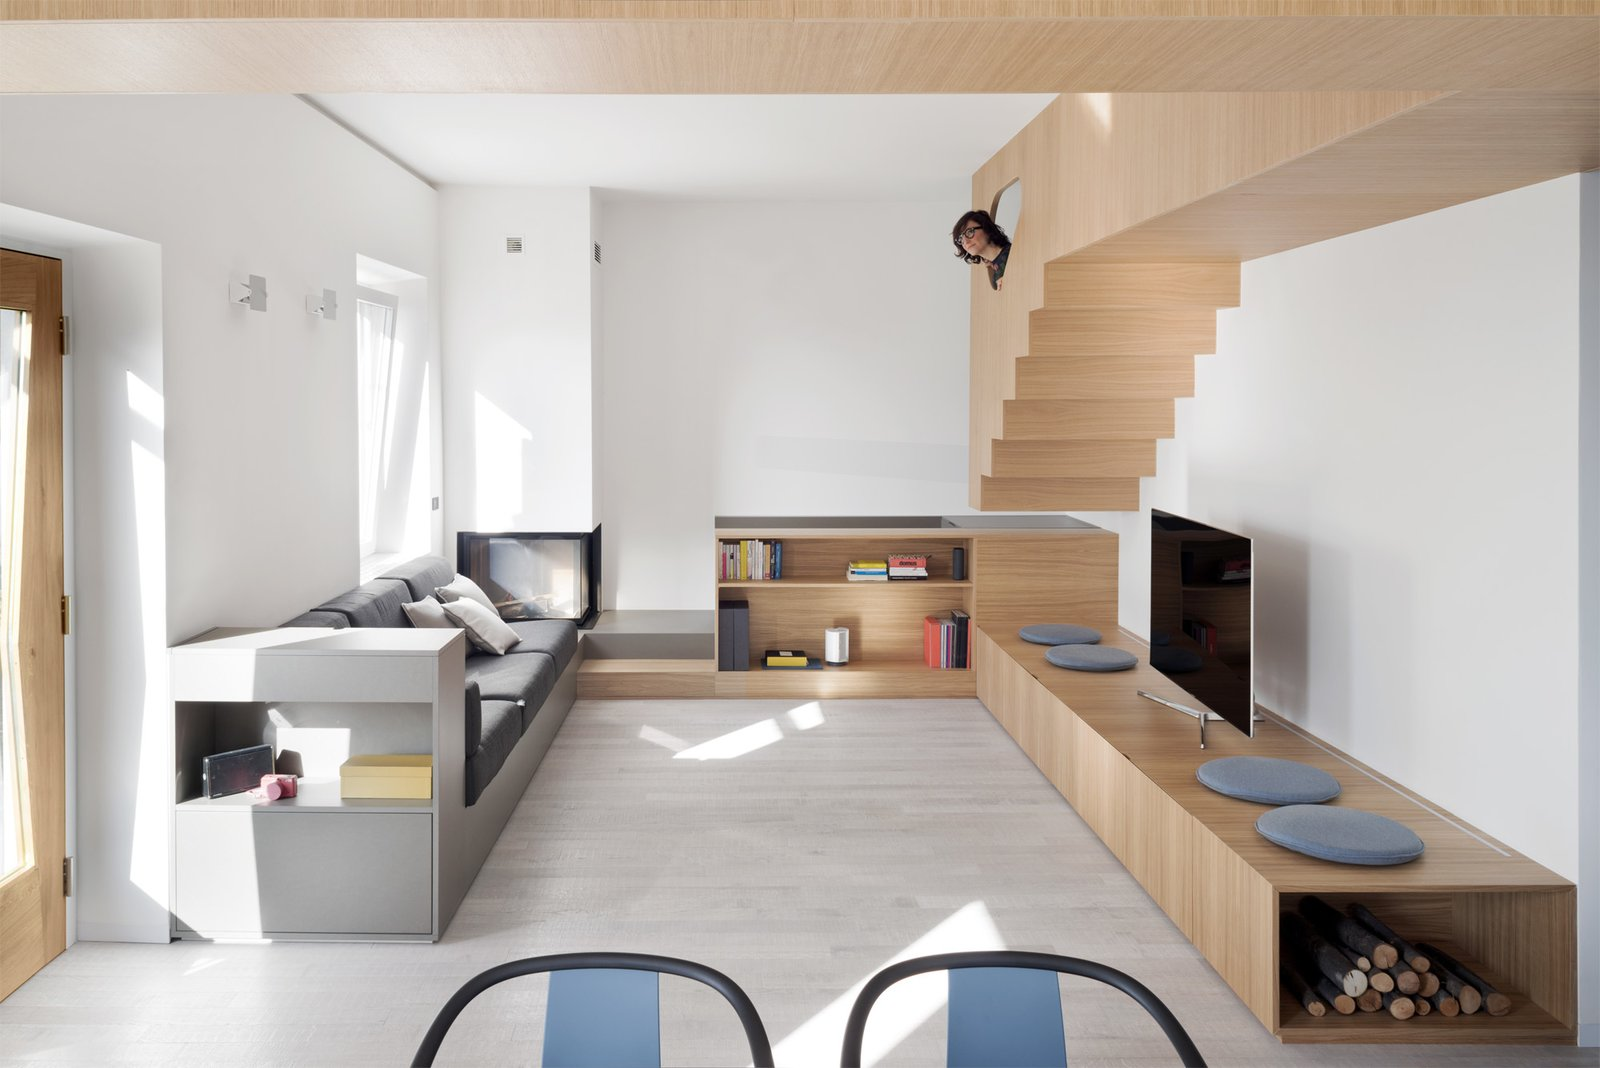 Before & After: A Streamlined Apartment in Italy Boasts Tons of Custom Furniture